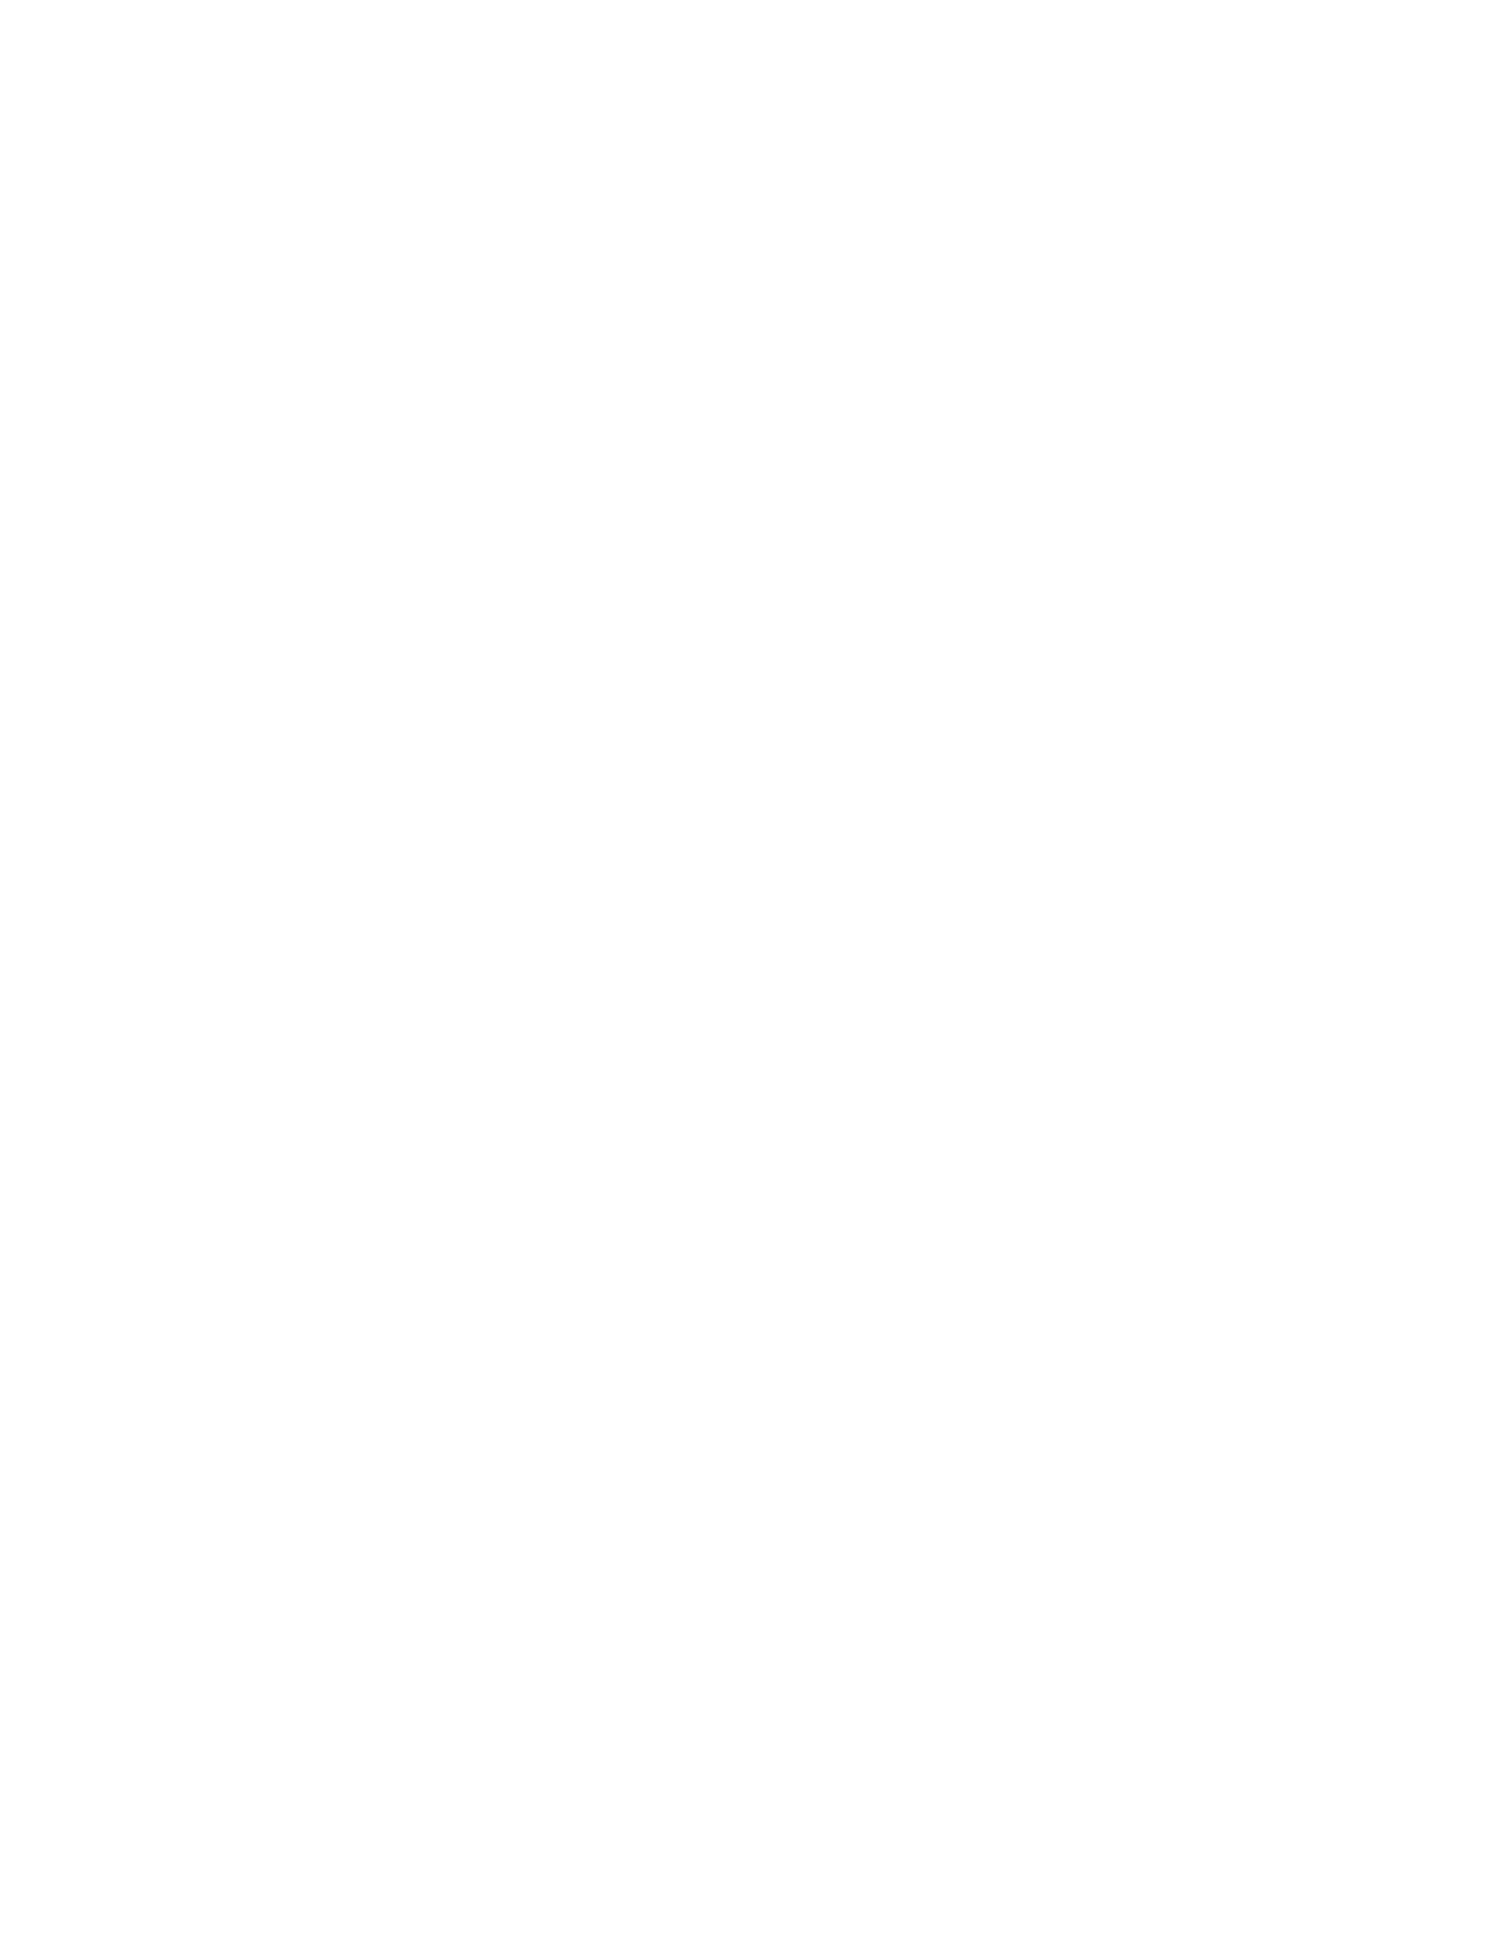 Curious Crow Cannabis Co.